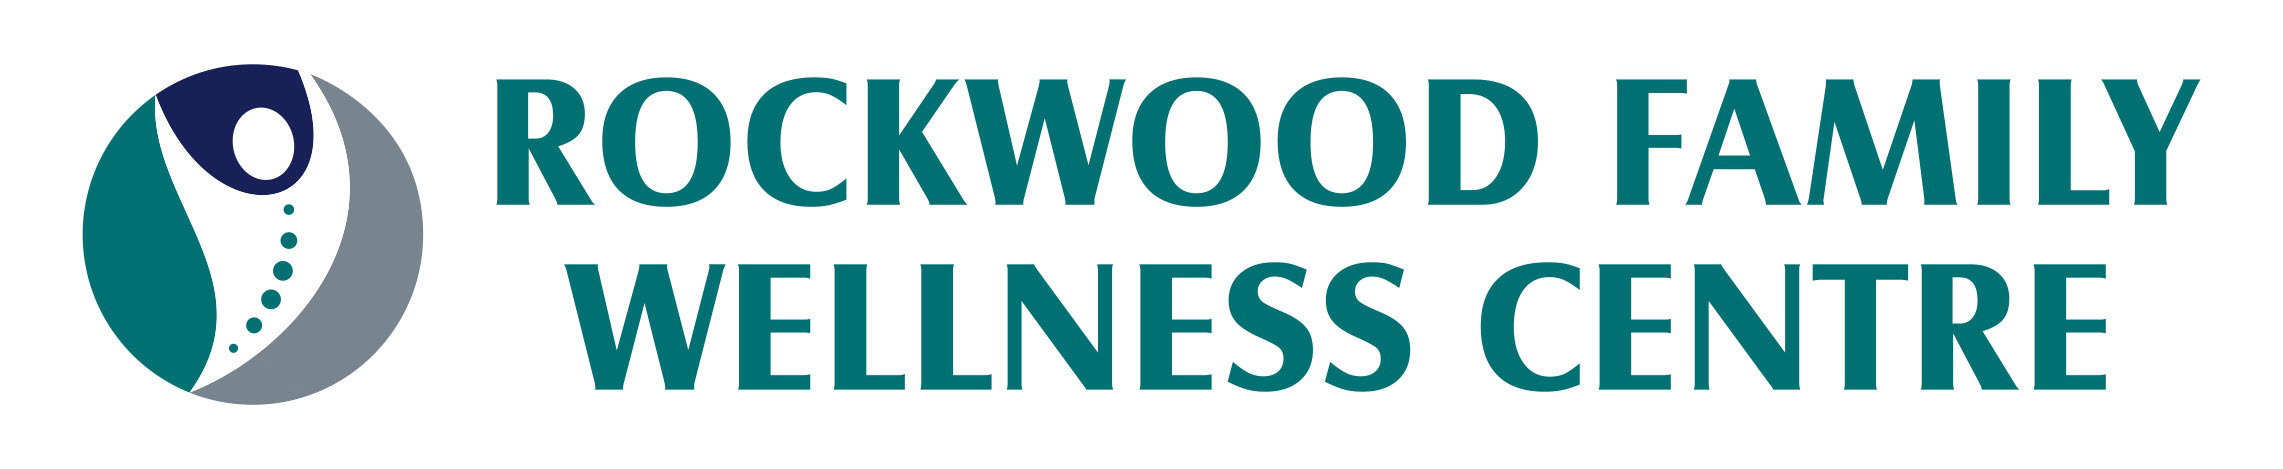 Rockwood Family Wellness